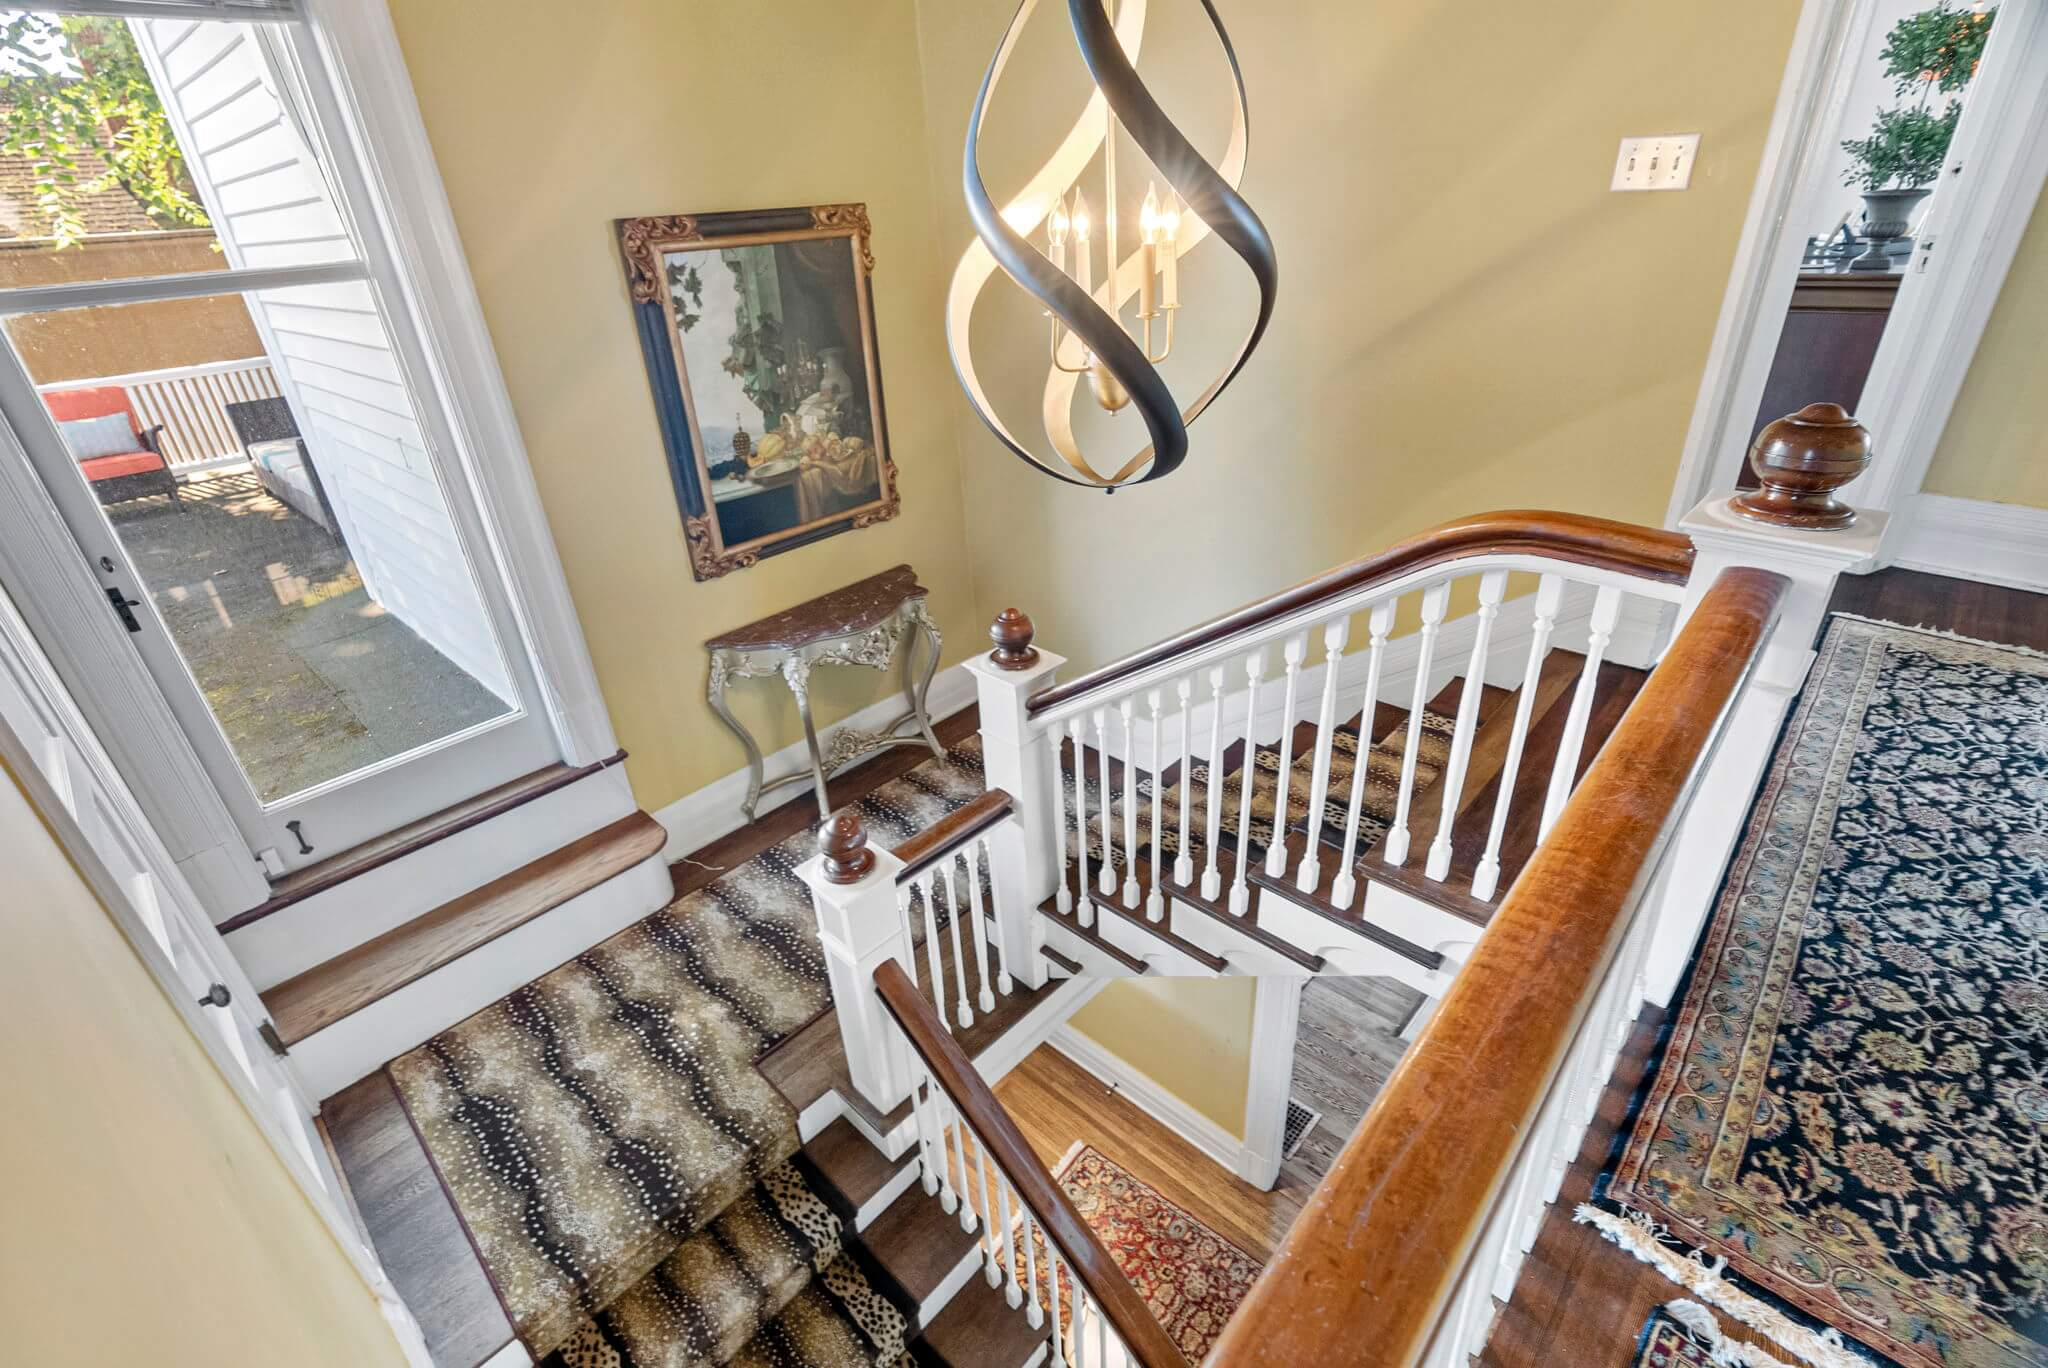 The formal staircase offers access to a roof-top deck over the porte-cochere